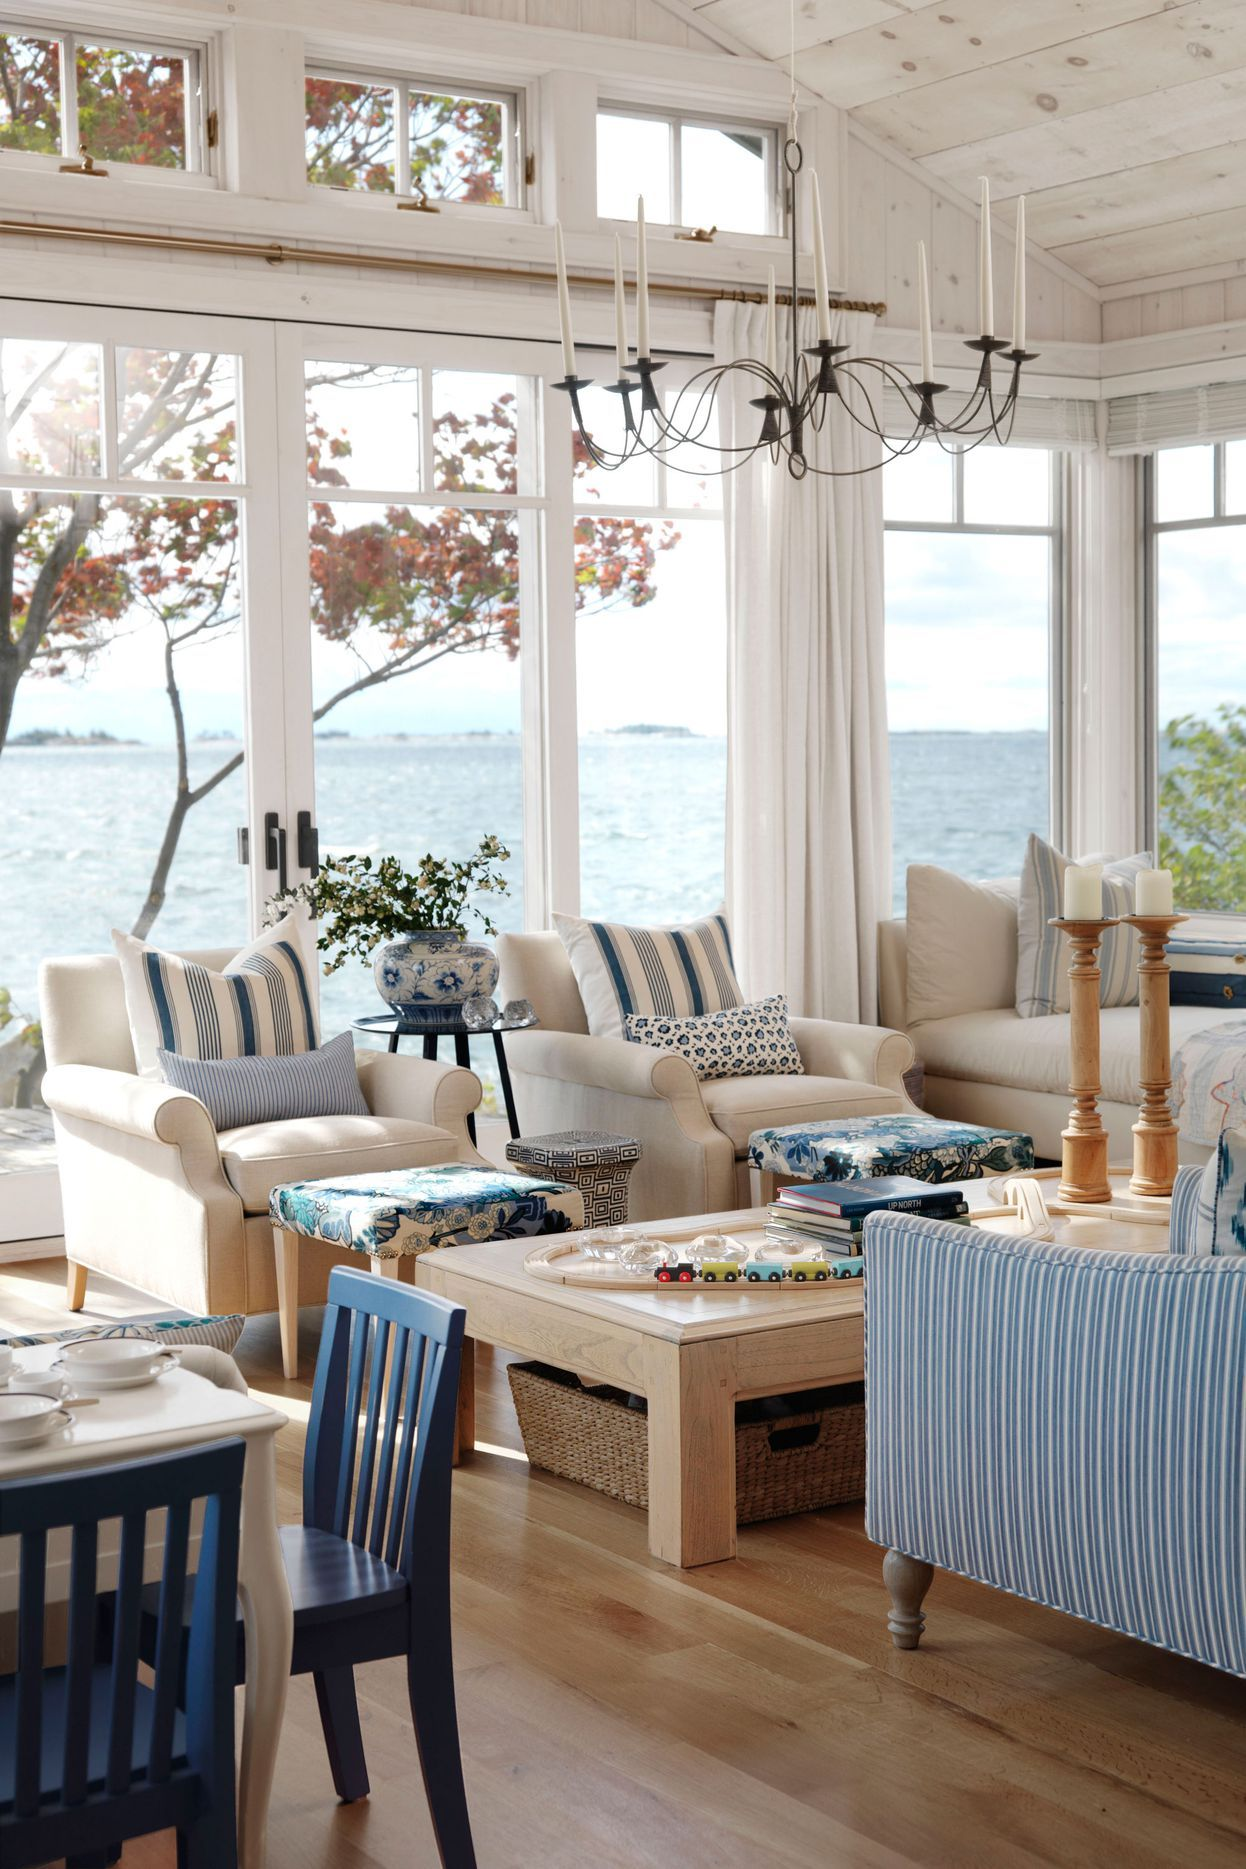 Bring Beach Vibes Into Any Home With These Décor Ideas Coastal Living Rooms Beach House Decor - Landhaus Style